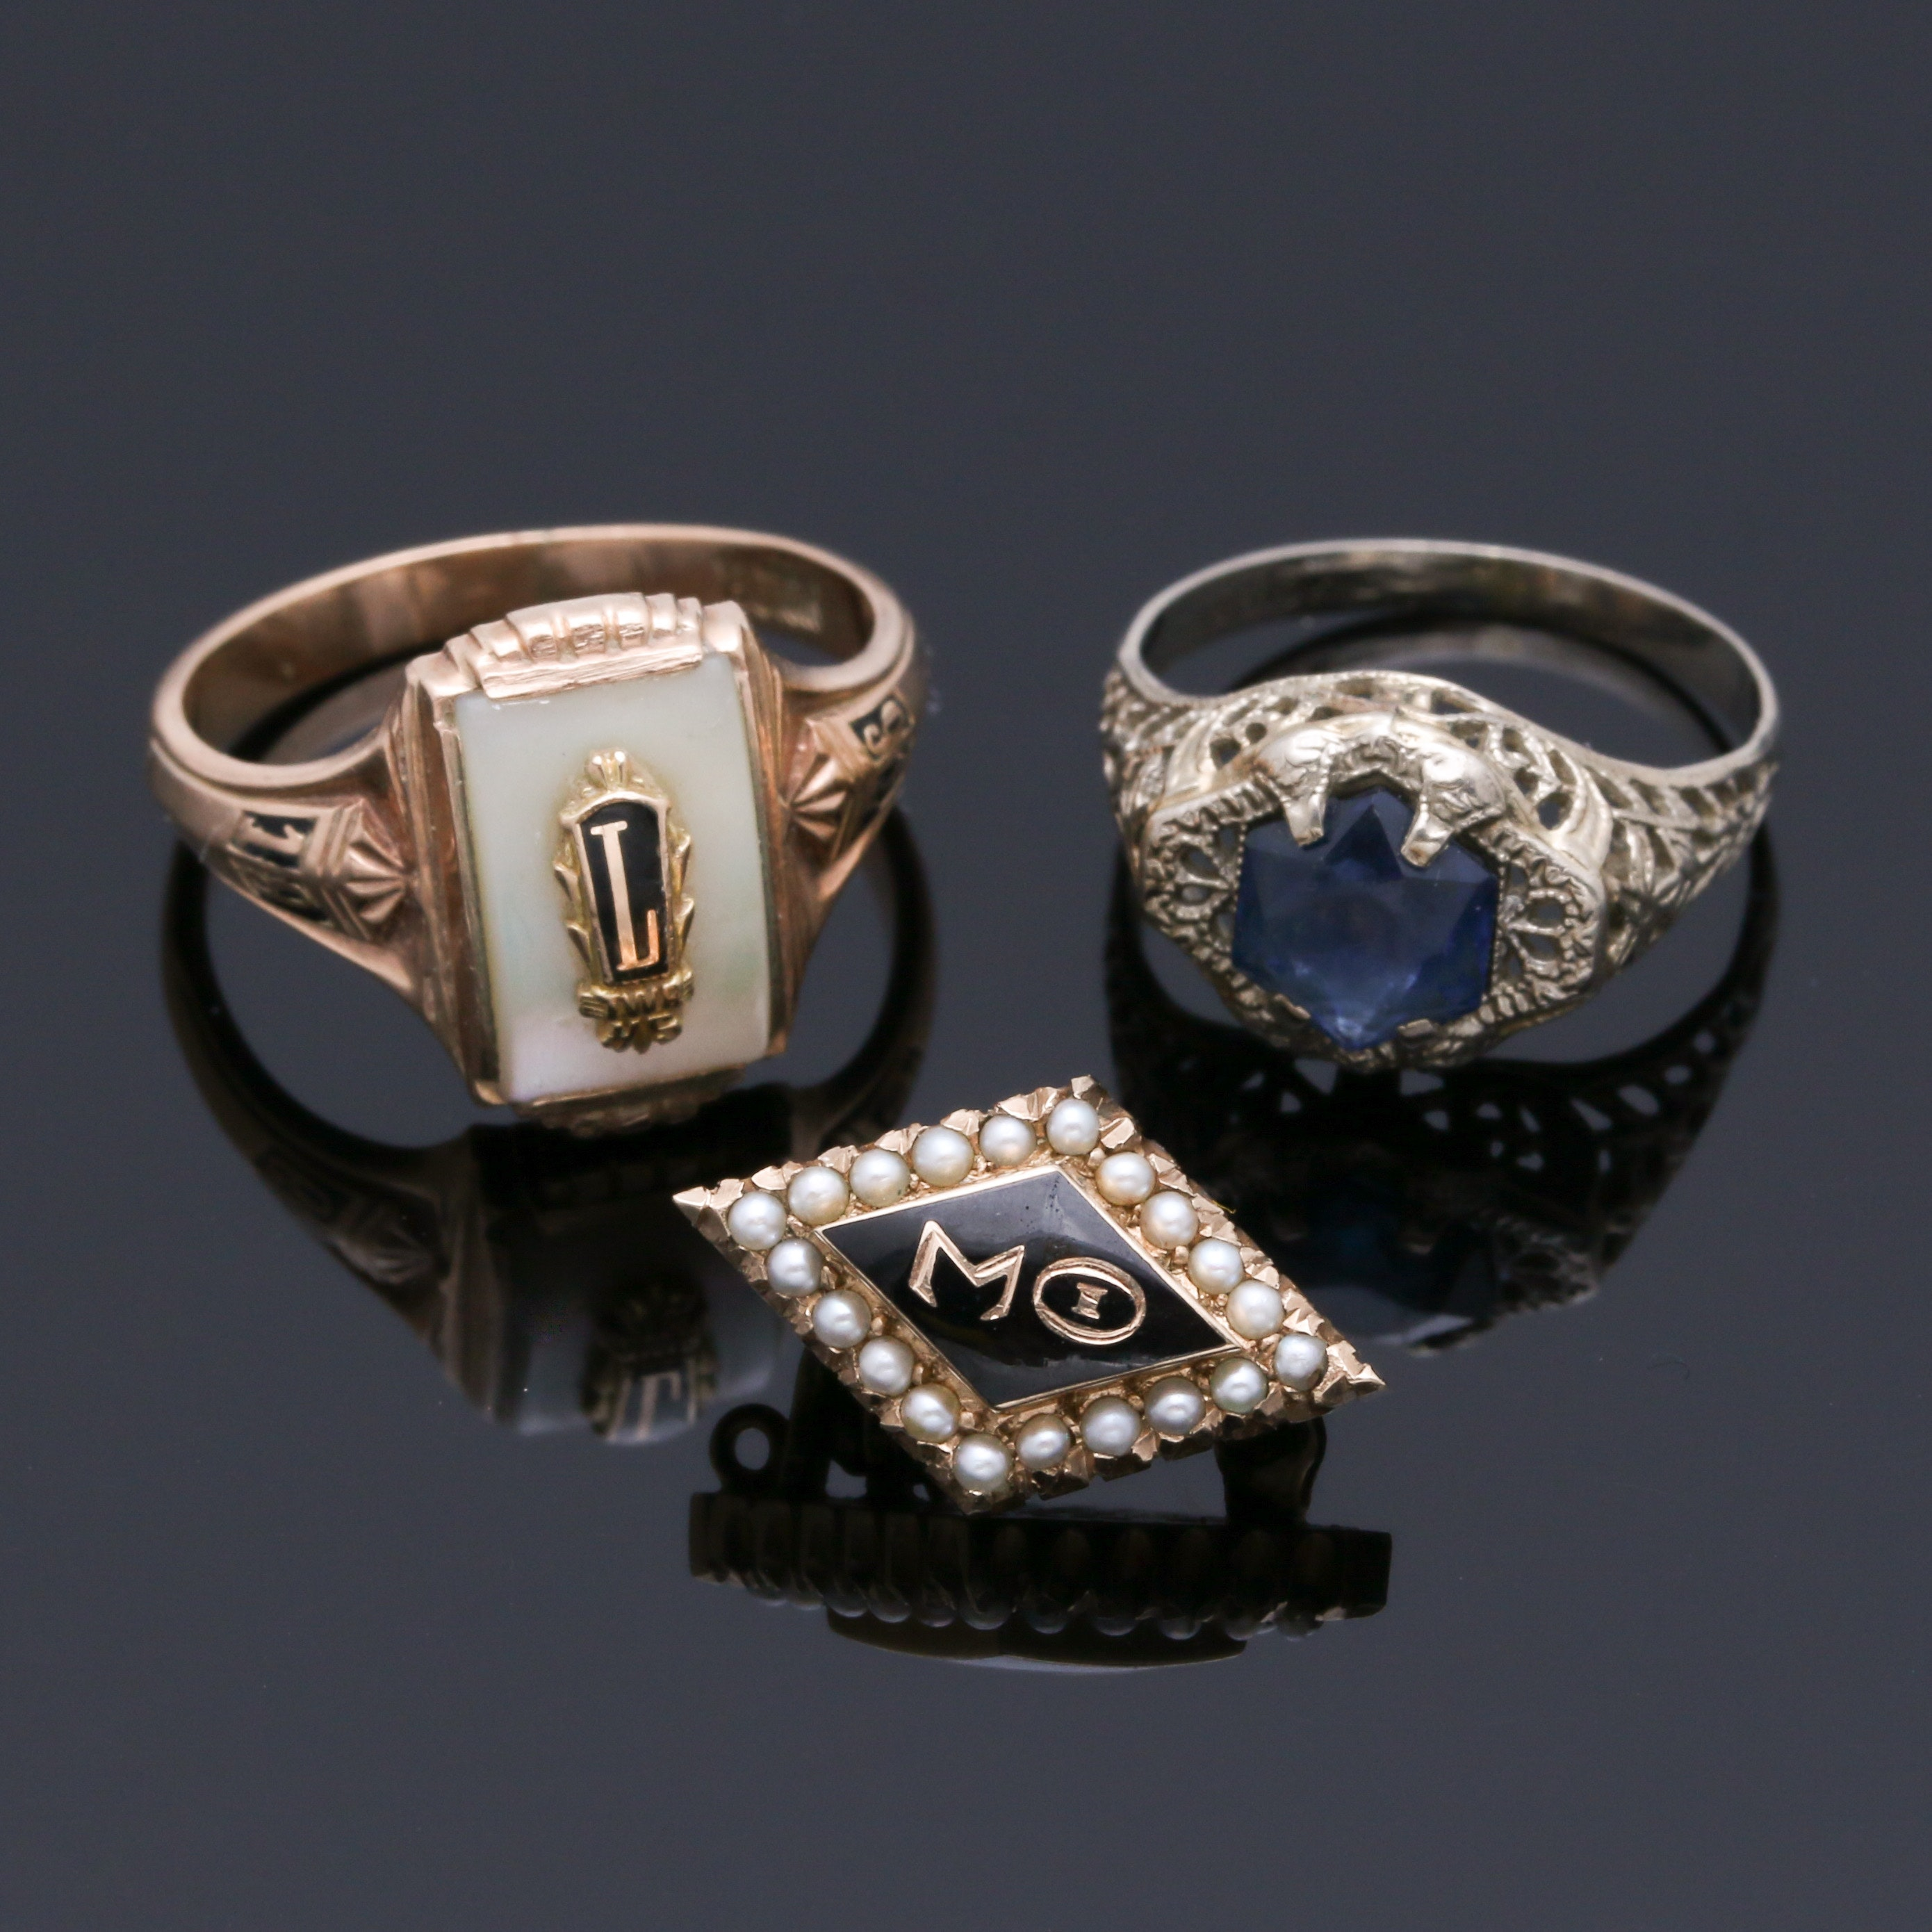 10K White and Yellow Gold Gemstone Brooch and Rings